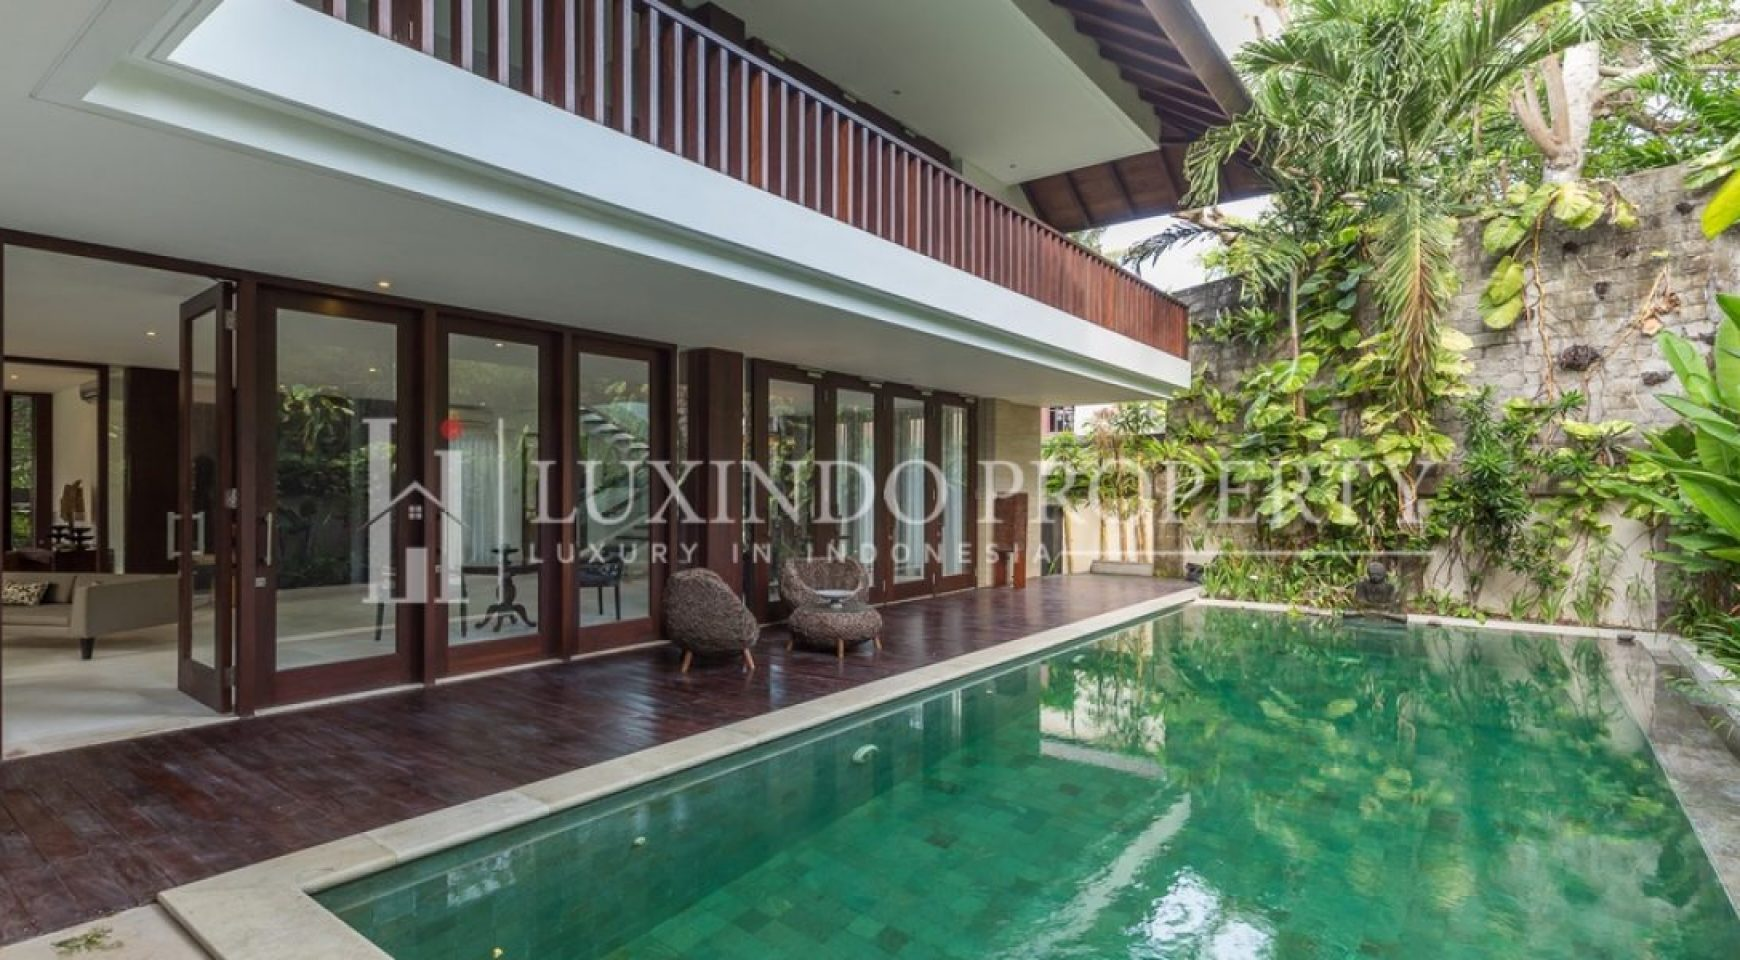 Sanur Stunning High Quality 4 Bedrooms Villa In The Beach Side Sanur For Yearly Rental Rv190 Luxindo Property